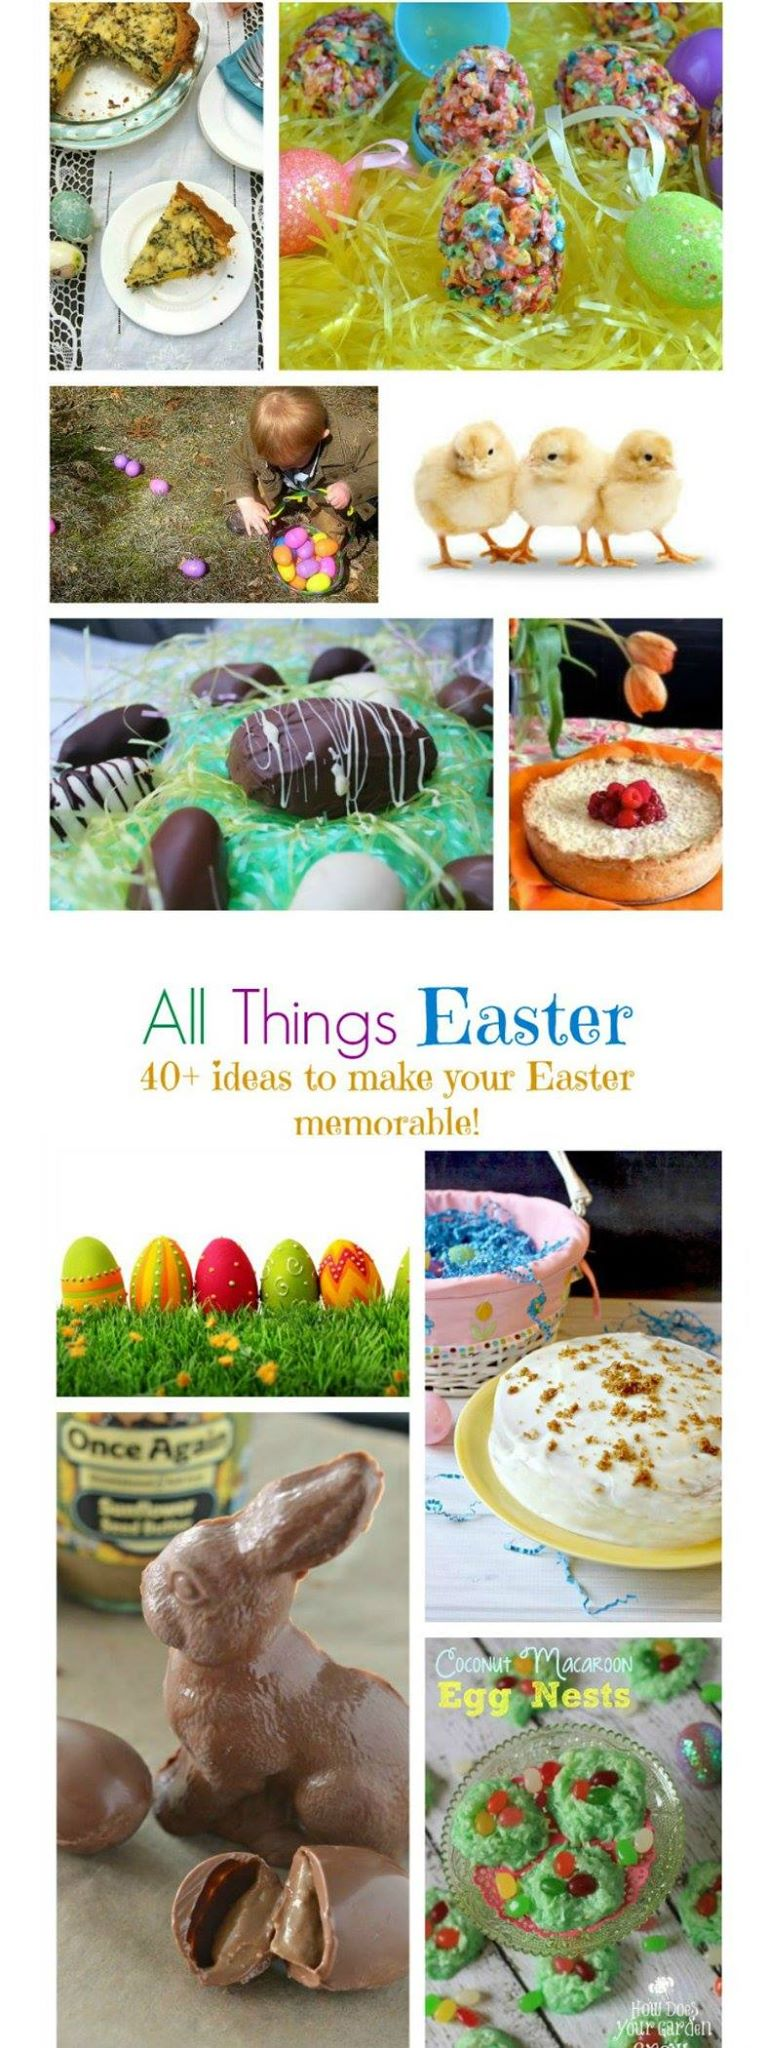 #AllThingsEaster- Over 25 Easter dishes and activities!